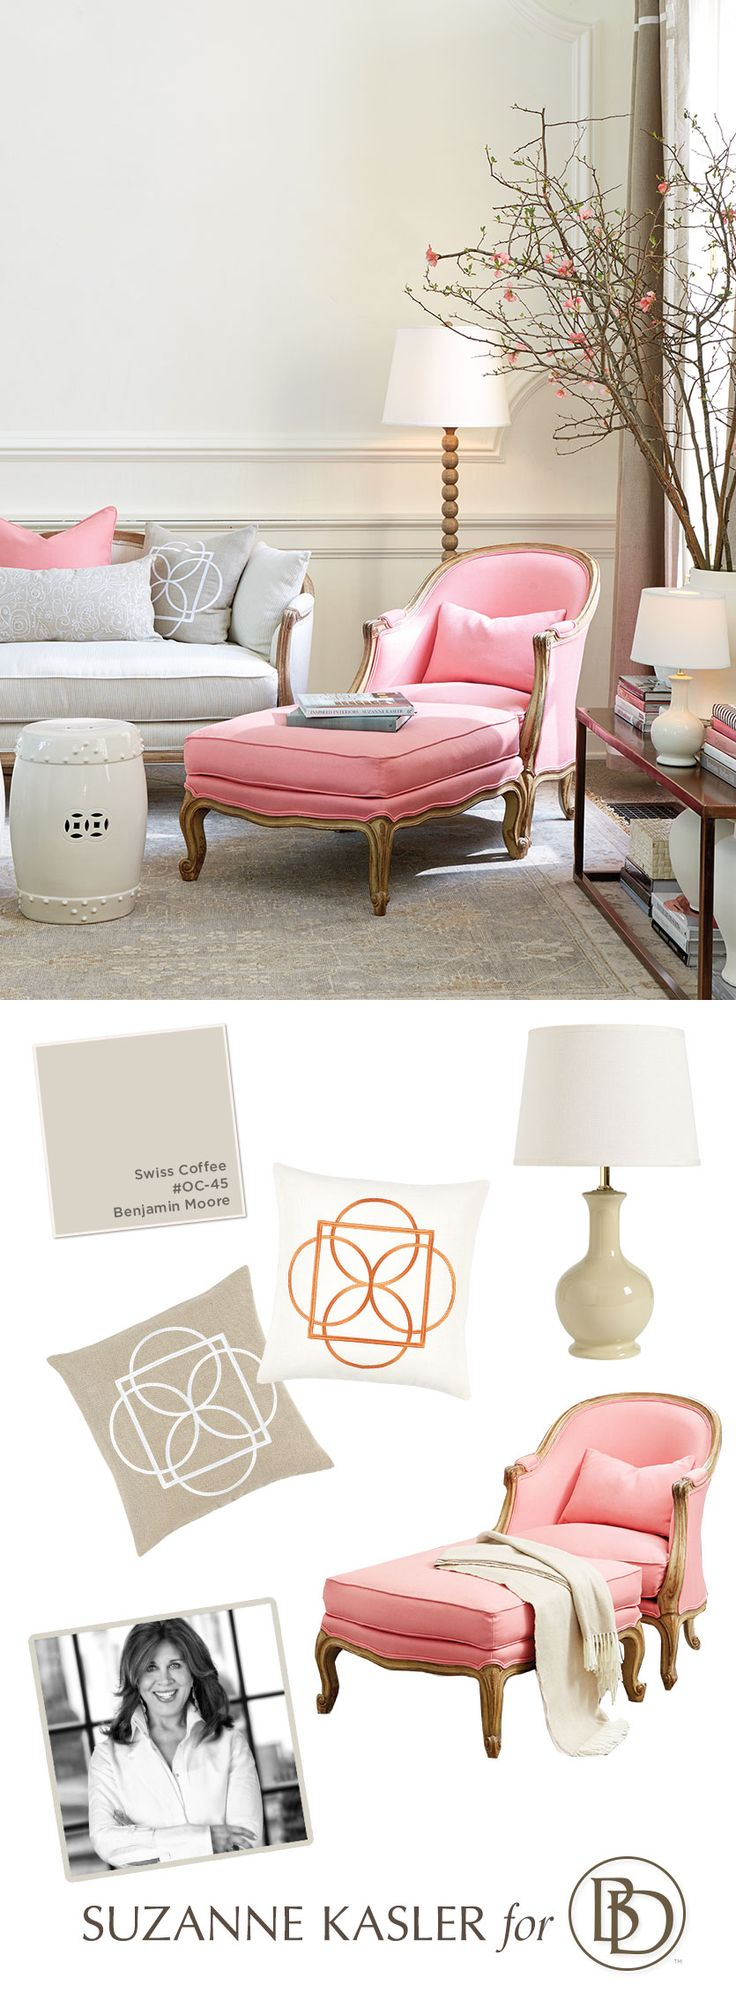 Looking for some home decor inspiration? We're bringing celebrated interior designer Suzanne Kasler's sophisticated look to your home with her favorite neutrals and her newest Peony Pink linen fabric.